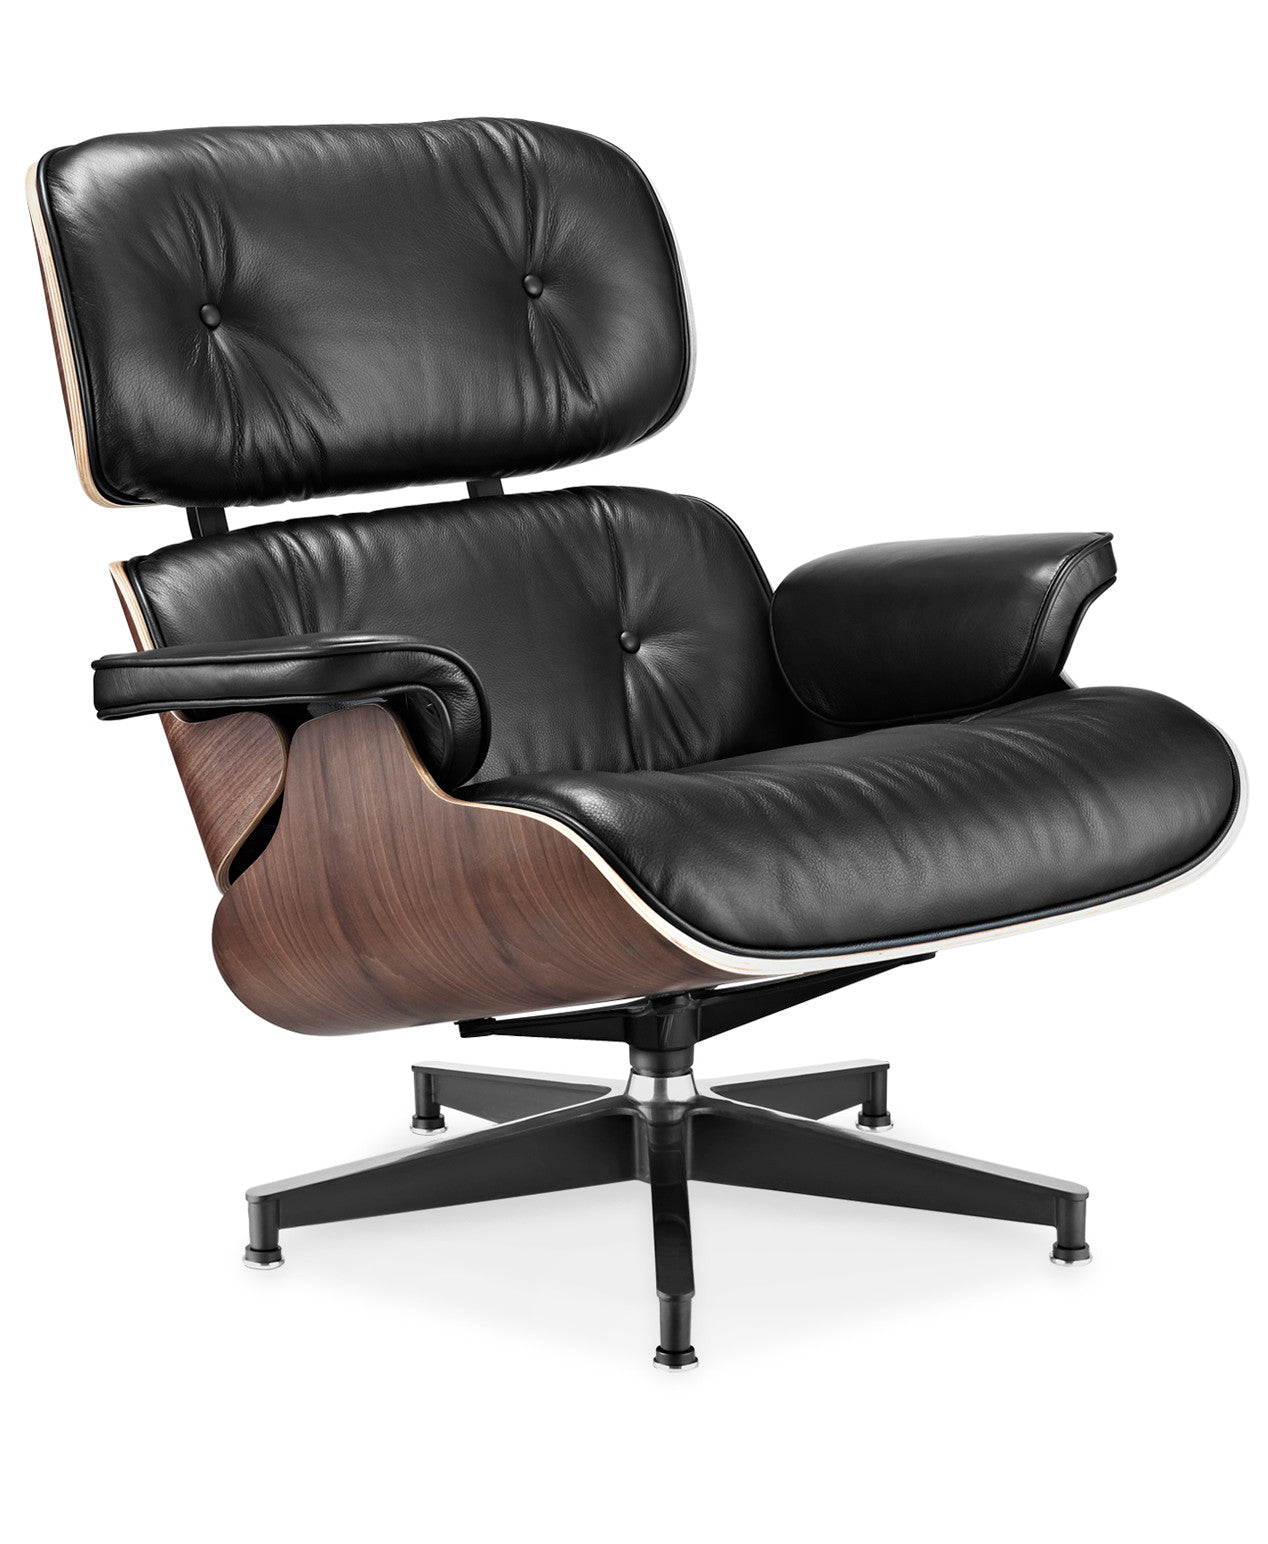 Eames Chair Leather 670 lounge chair | leather